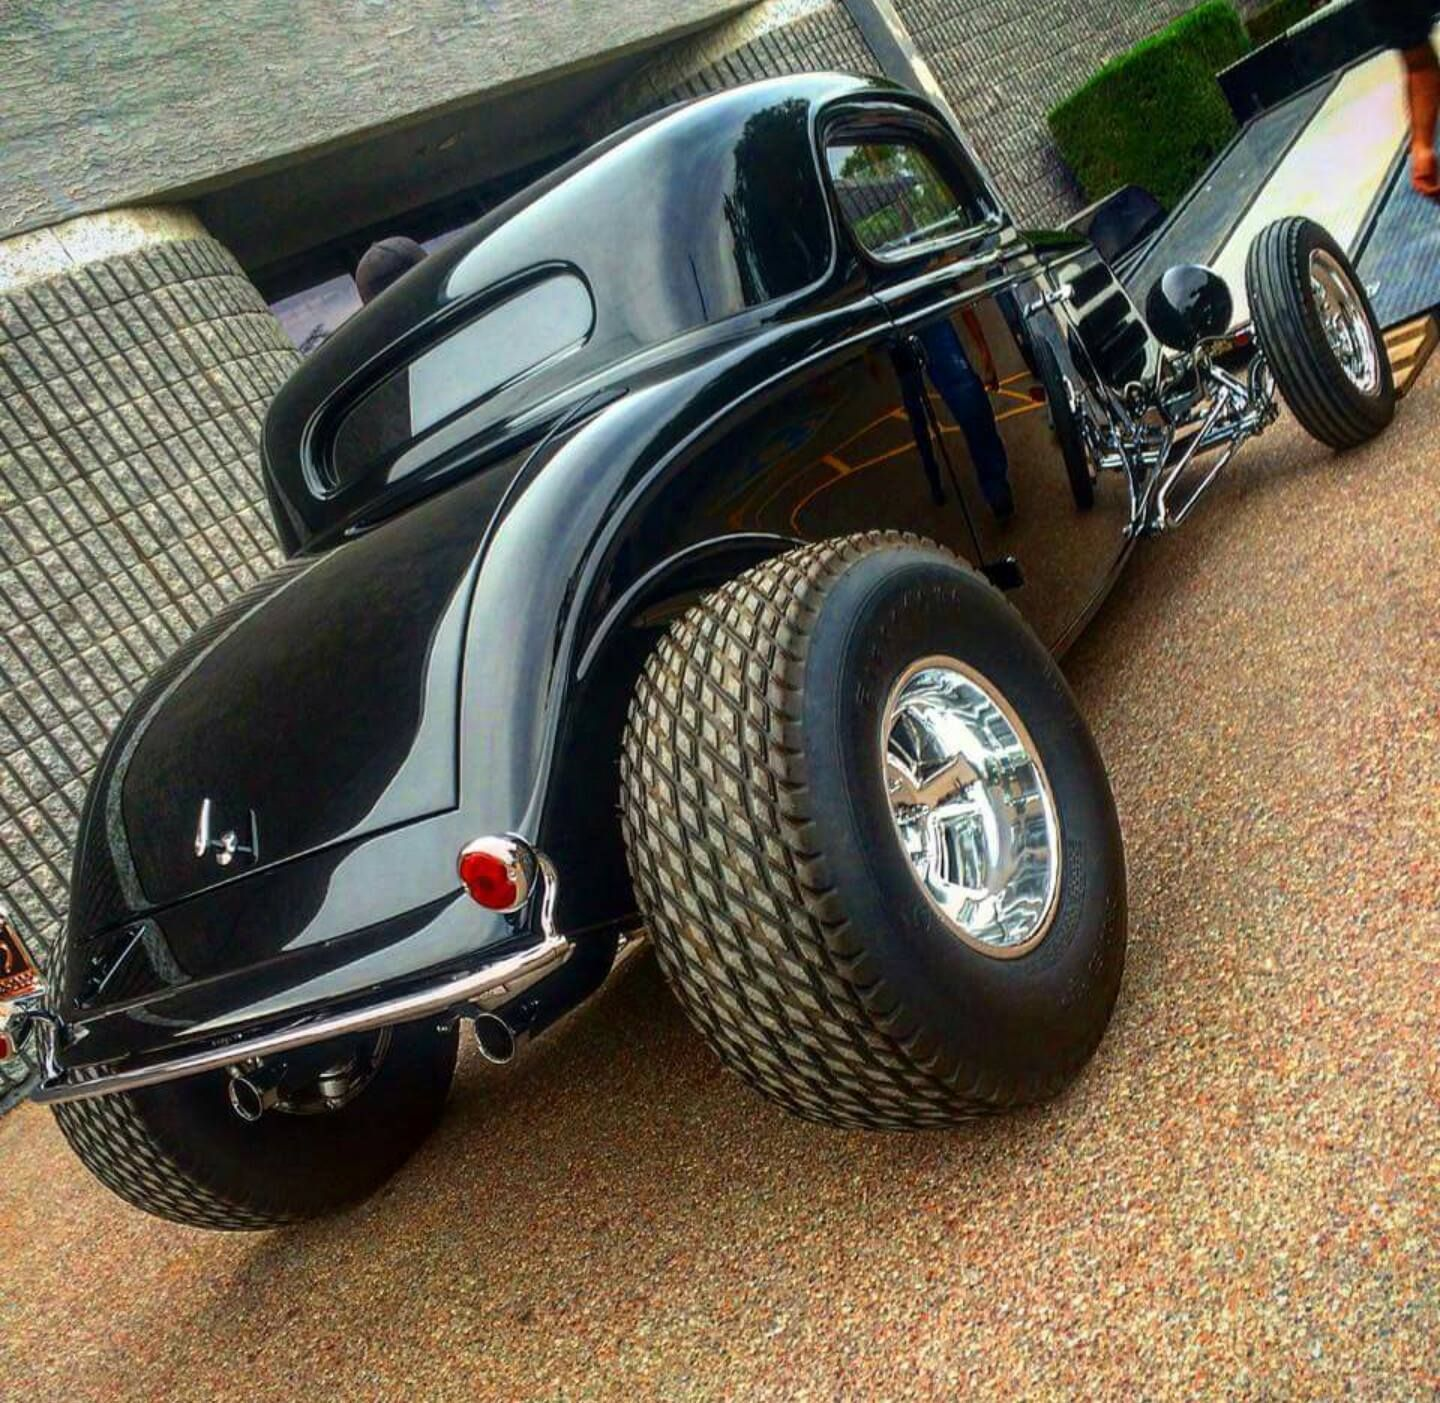 Coupe Deans Rods Hot By 33 Coupe By Dean S Hot Rods Classic Cars Trucks Hot Rods Old Hot Rods Cool Old Cars